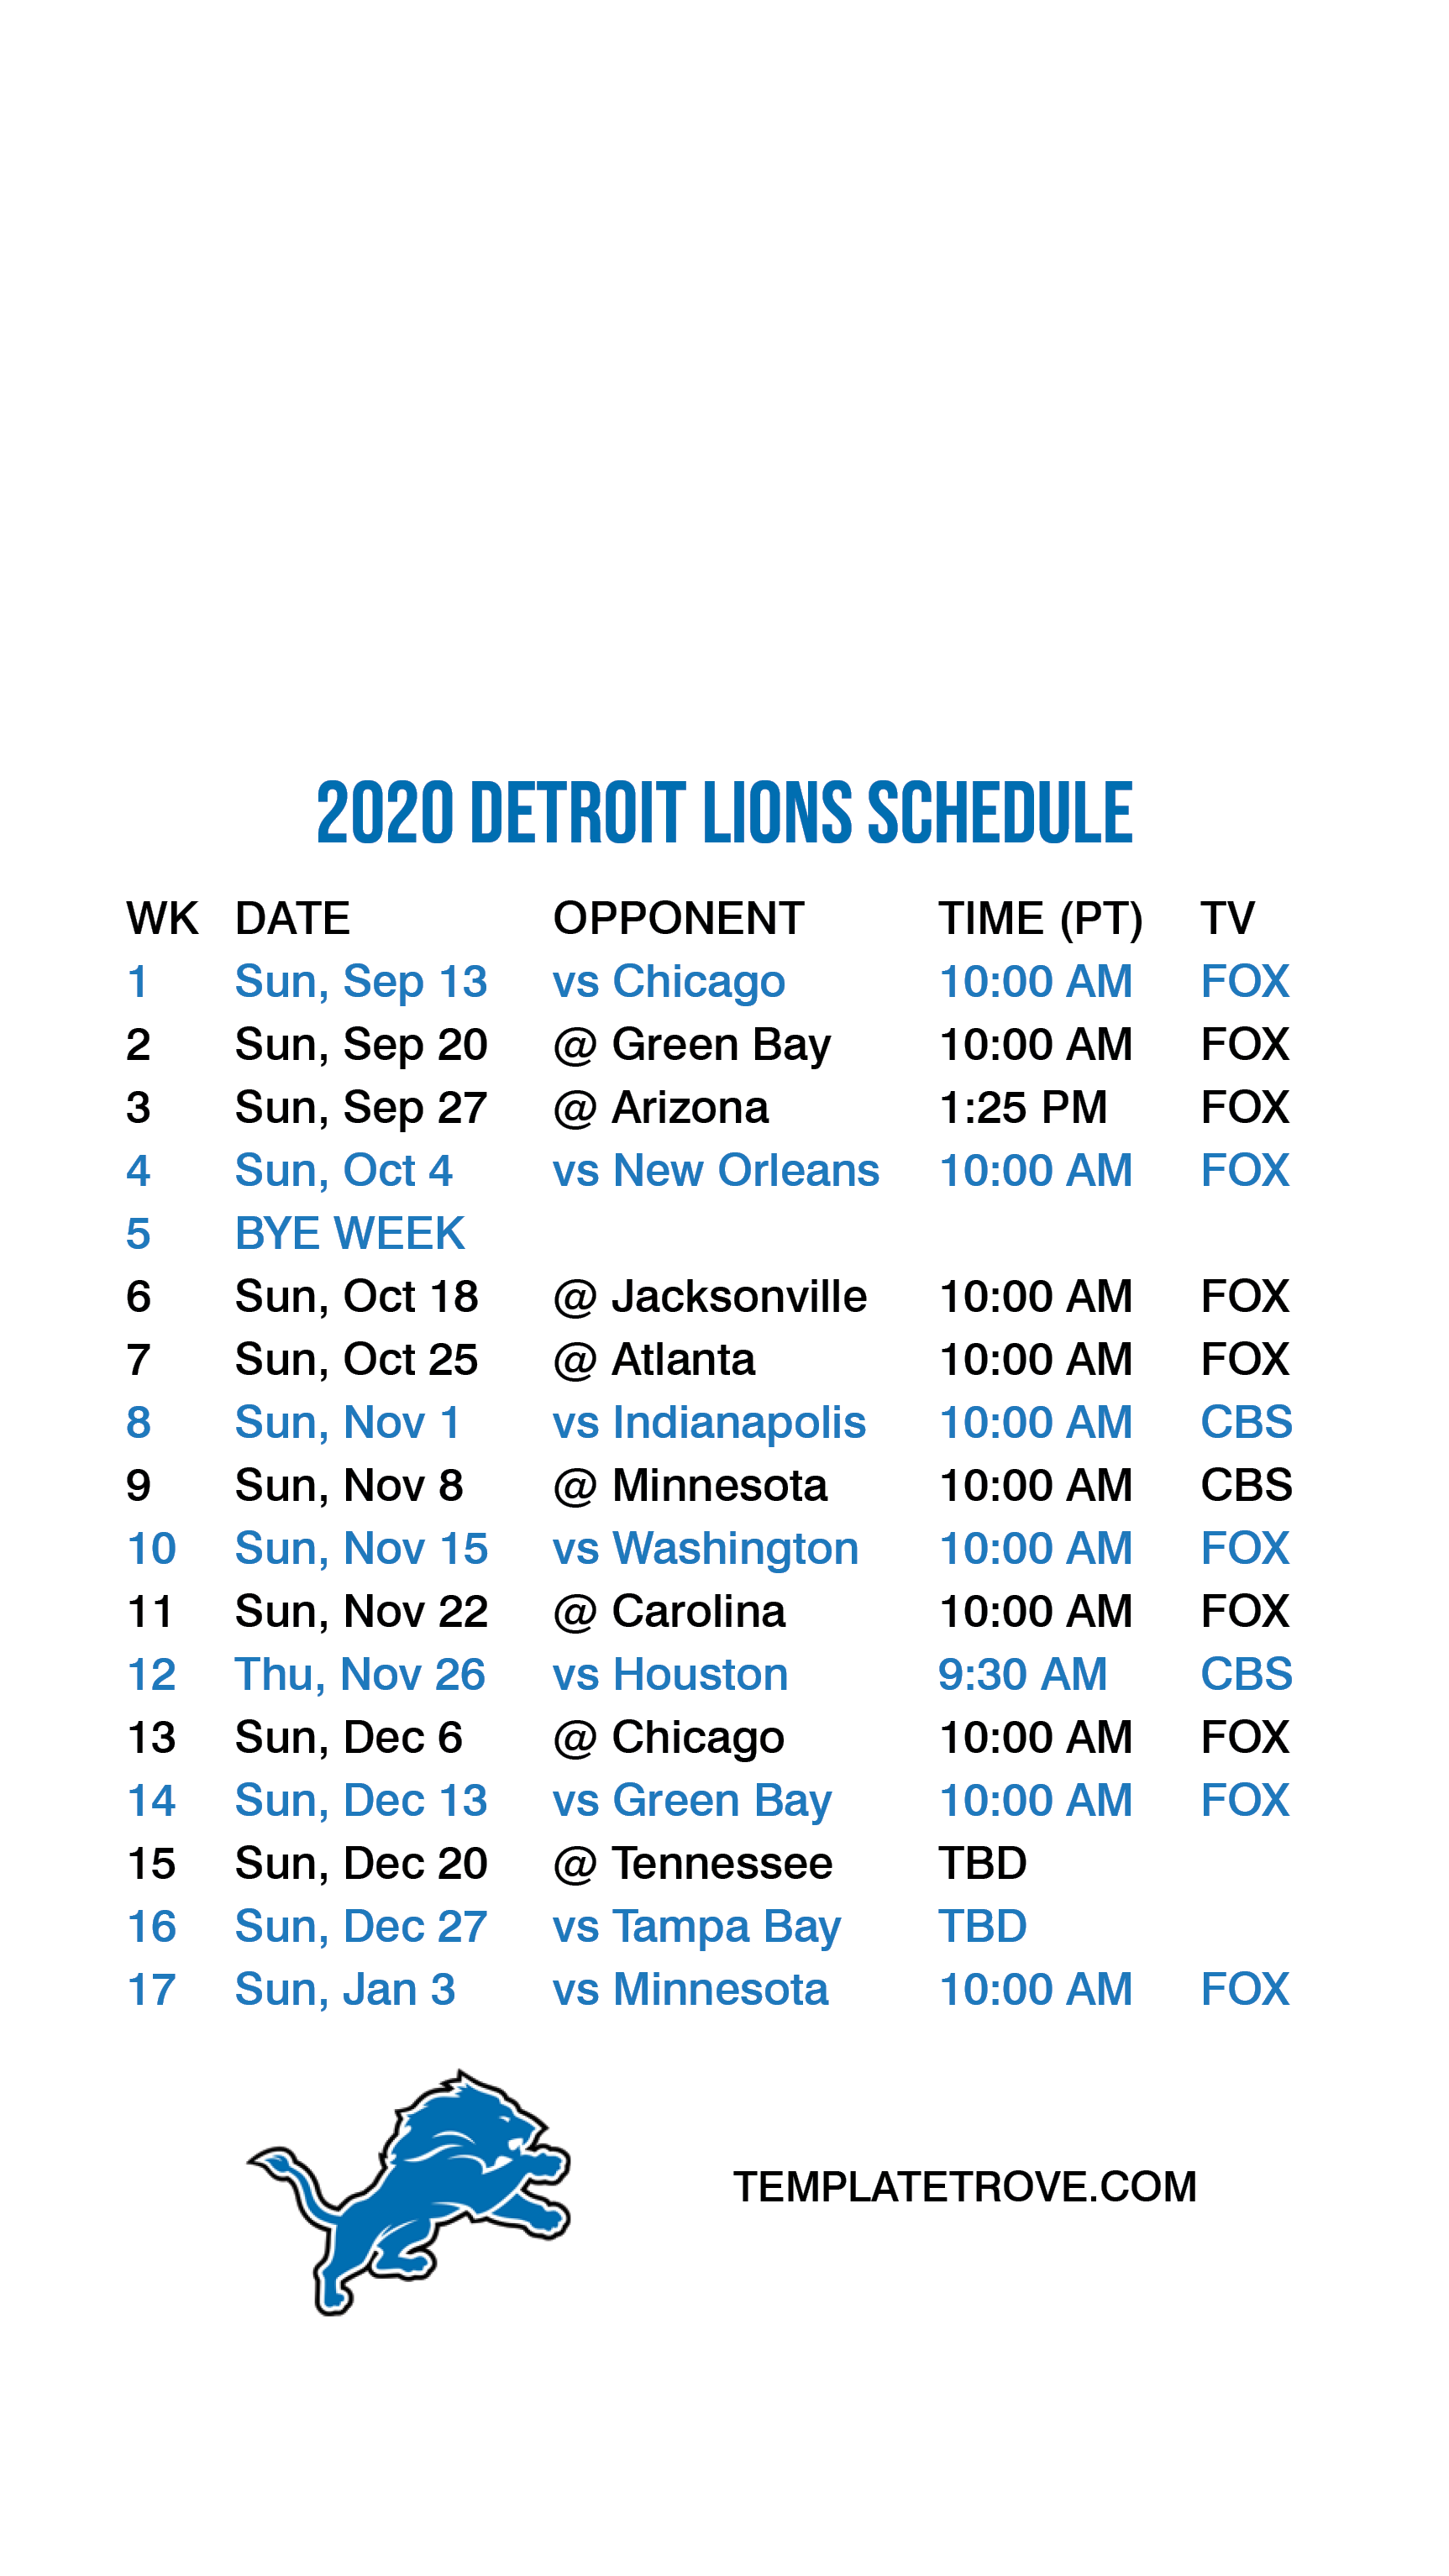 2020 2021 Detroit Lions Lock Screen Schedule For IPhone 6